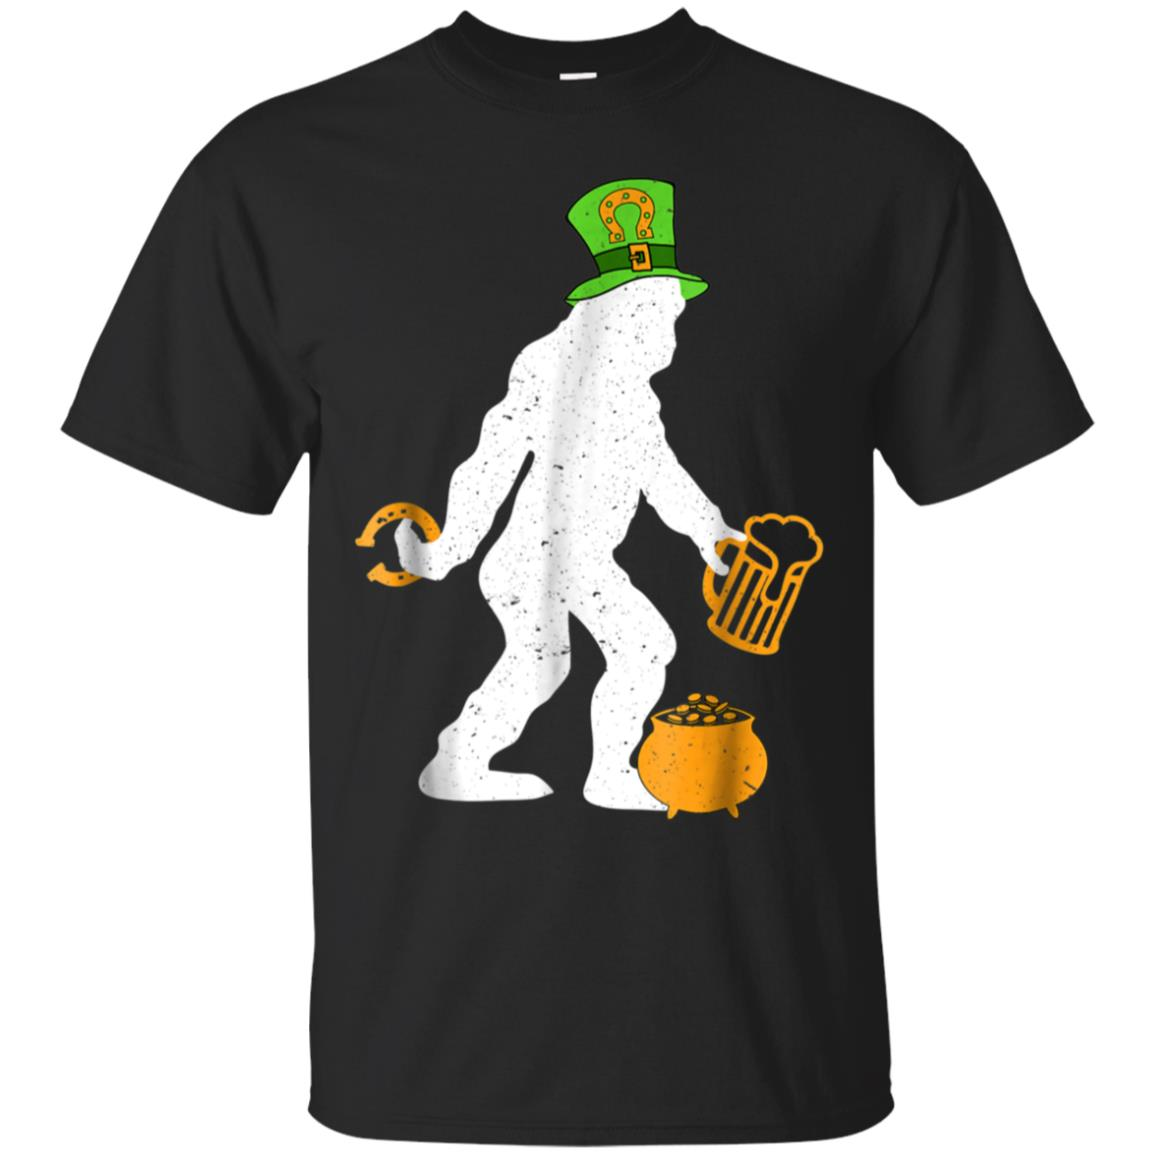 Bigfoot St Patrick's Day Shirt - Funny St Paddy's Day Tee 99promocode